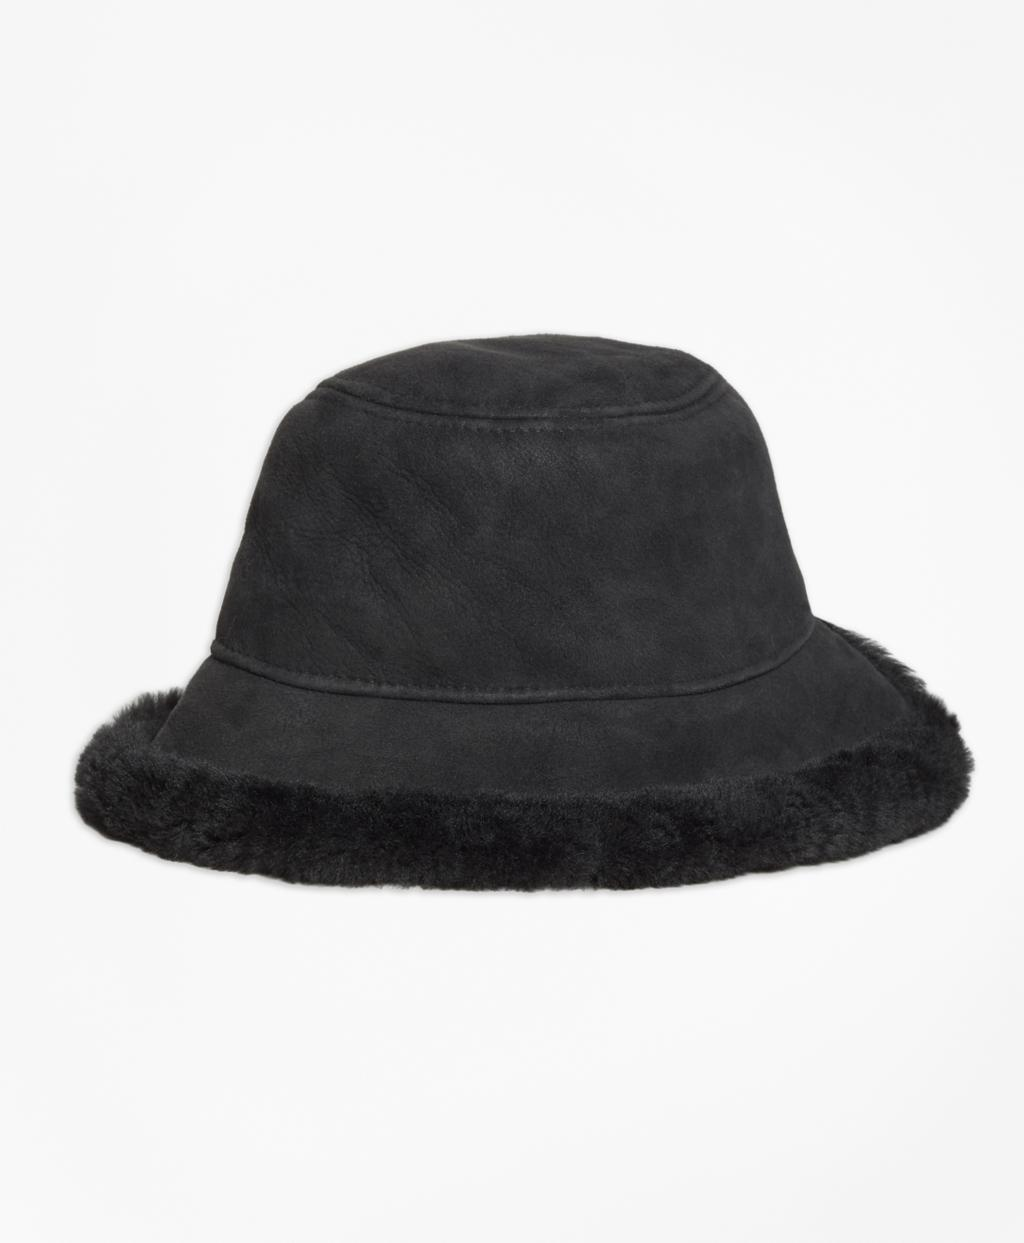 873932ff587a9 Lyst - Brooks Brothers Shearling Bucket Hat in Natural